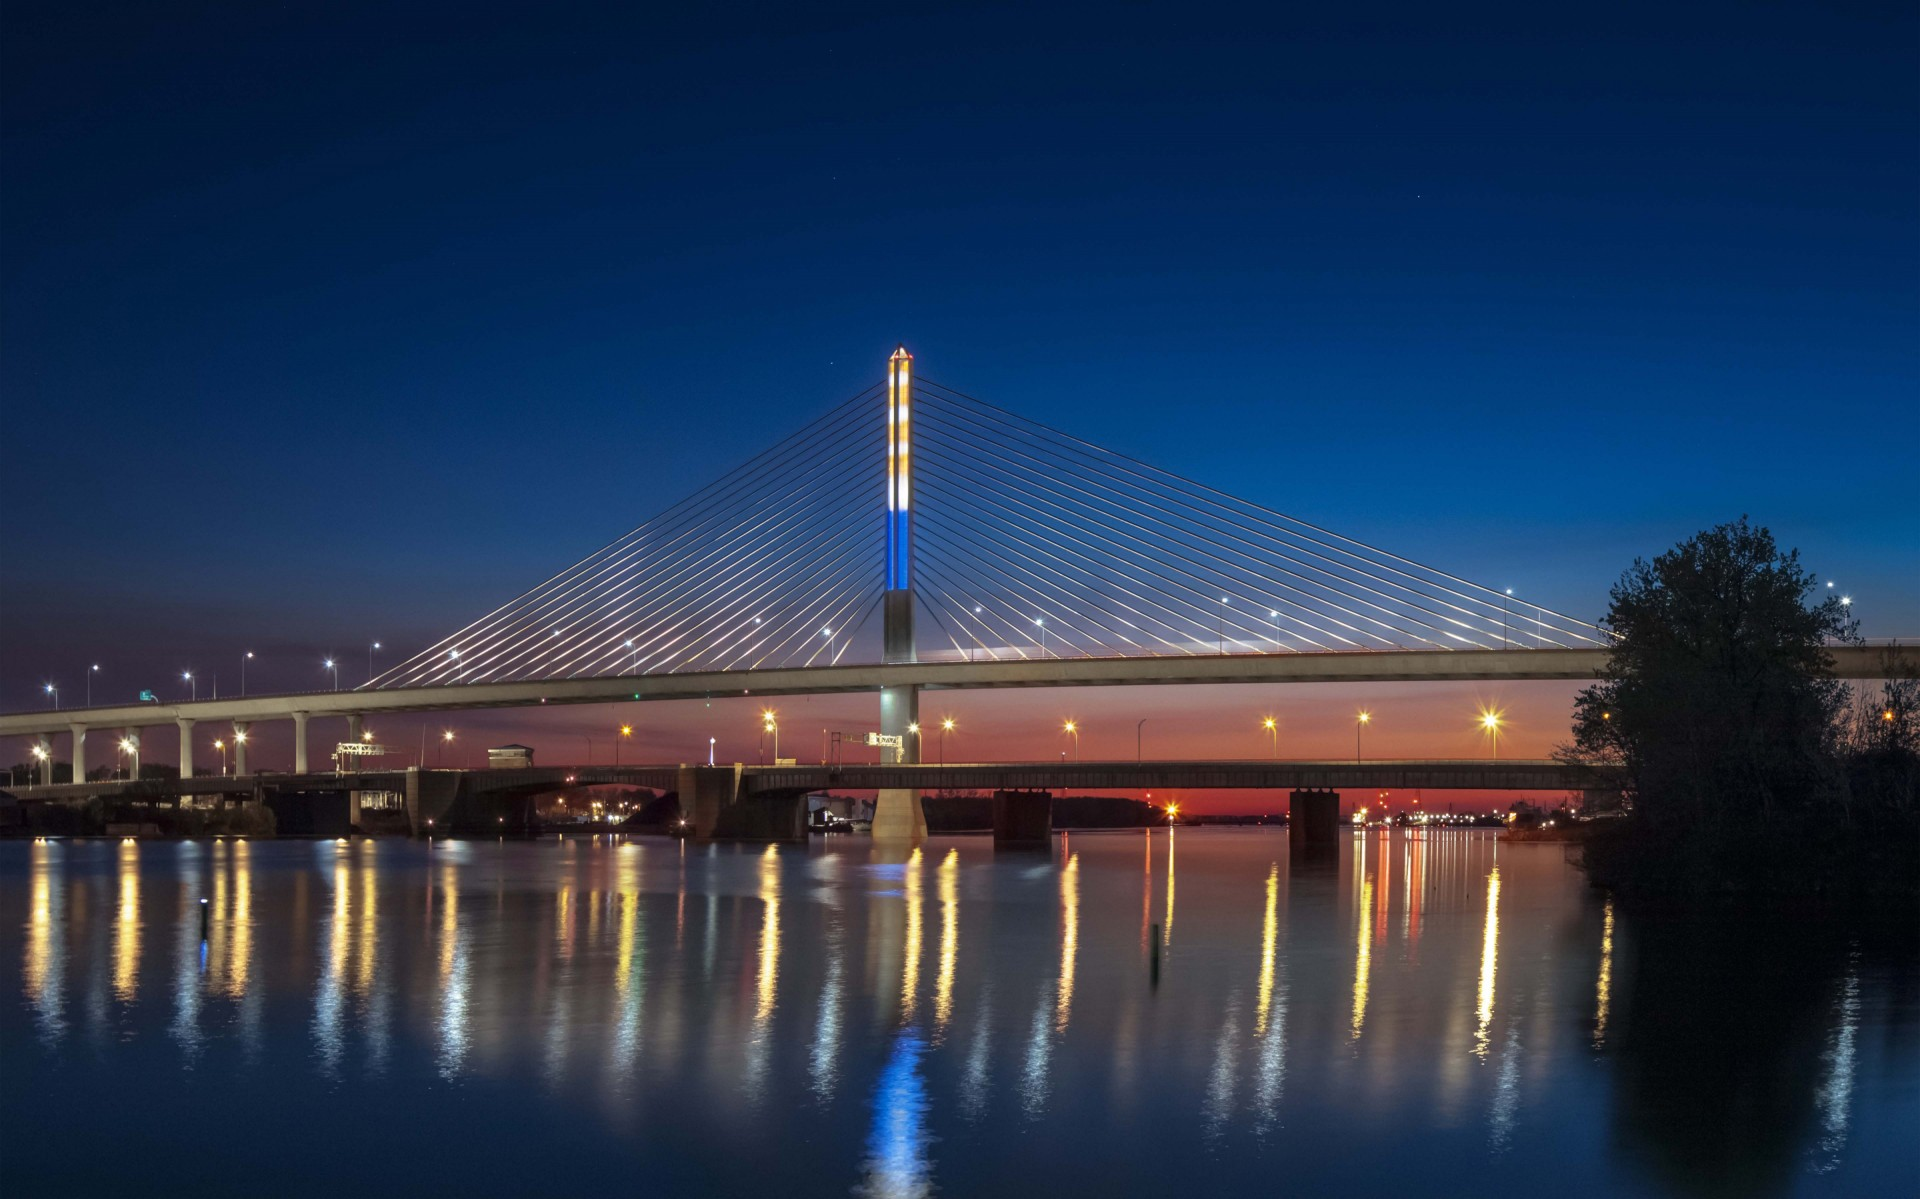 The 400-foot-high, glass-enclosed tower of the cable-stayed bridge known as the Veterans' Glass City Skyway (VGCS) is an incredible achievement and has become a symbol of Toledo itself. – Feinknopf Photography